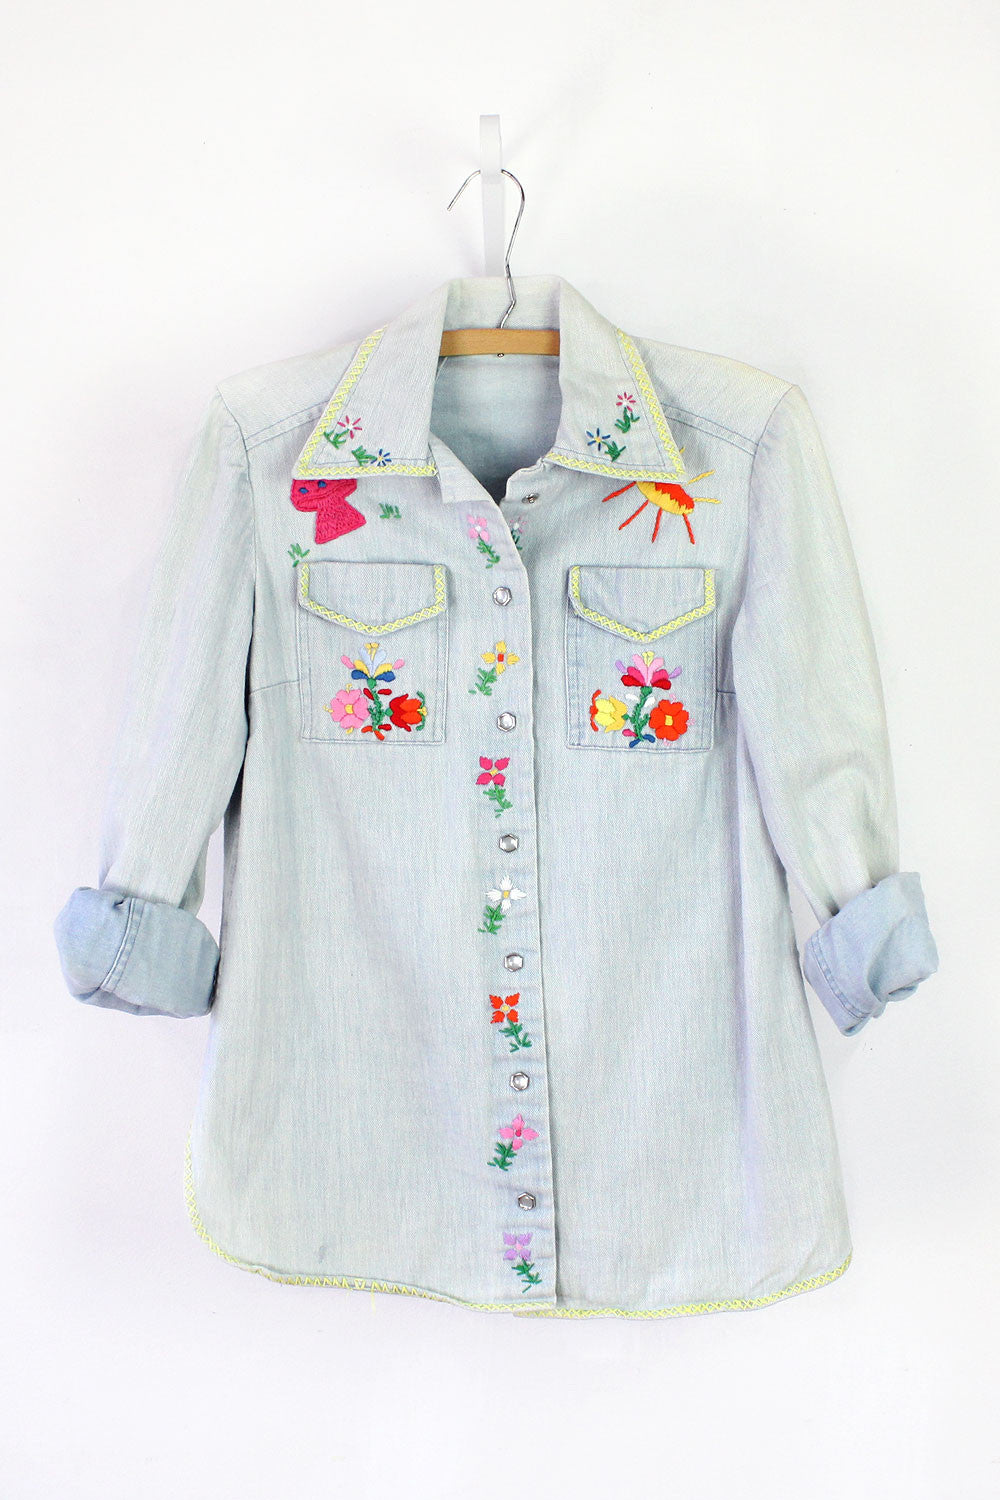 Embroidered Denim Shirt M